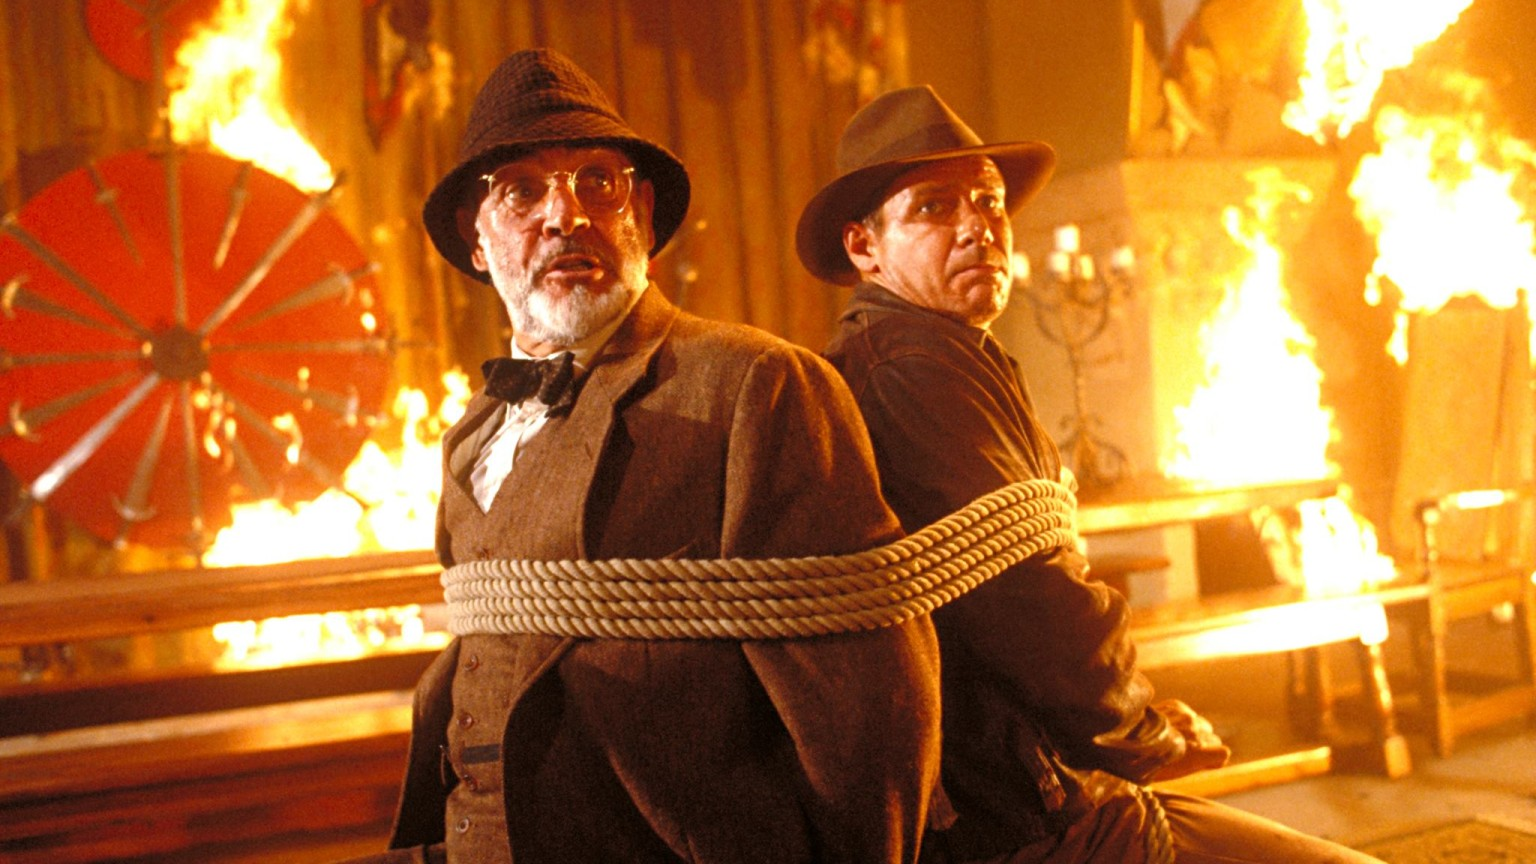 Indiana Jones and the Last Crusade - Indy and his father